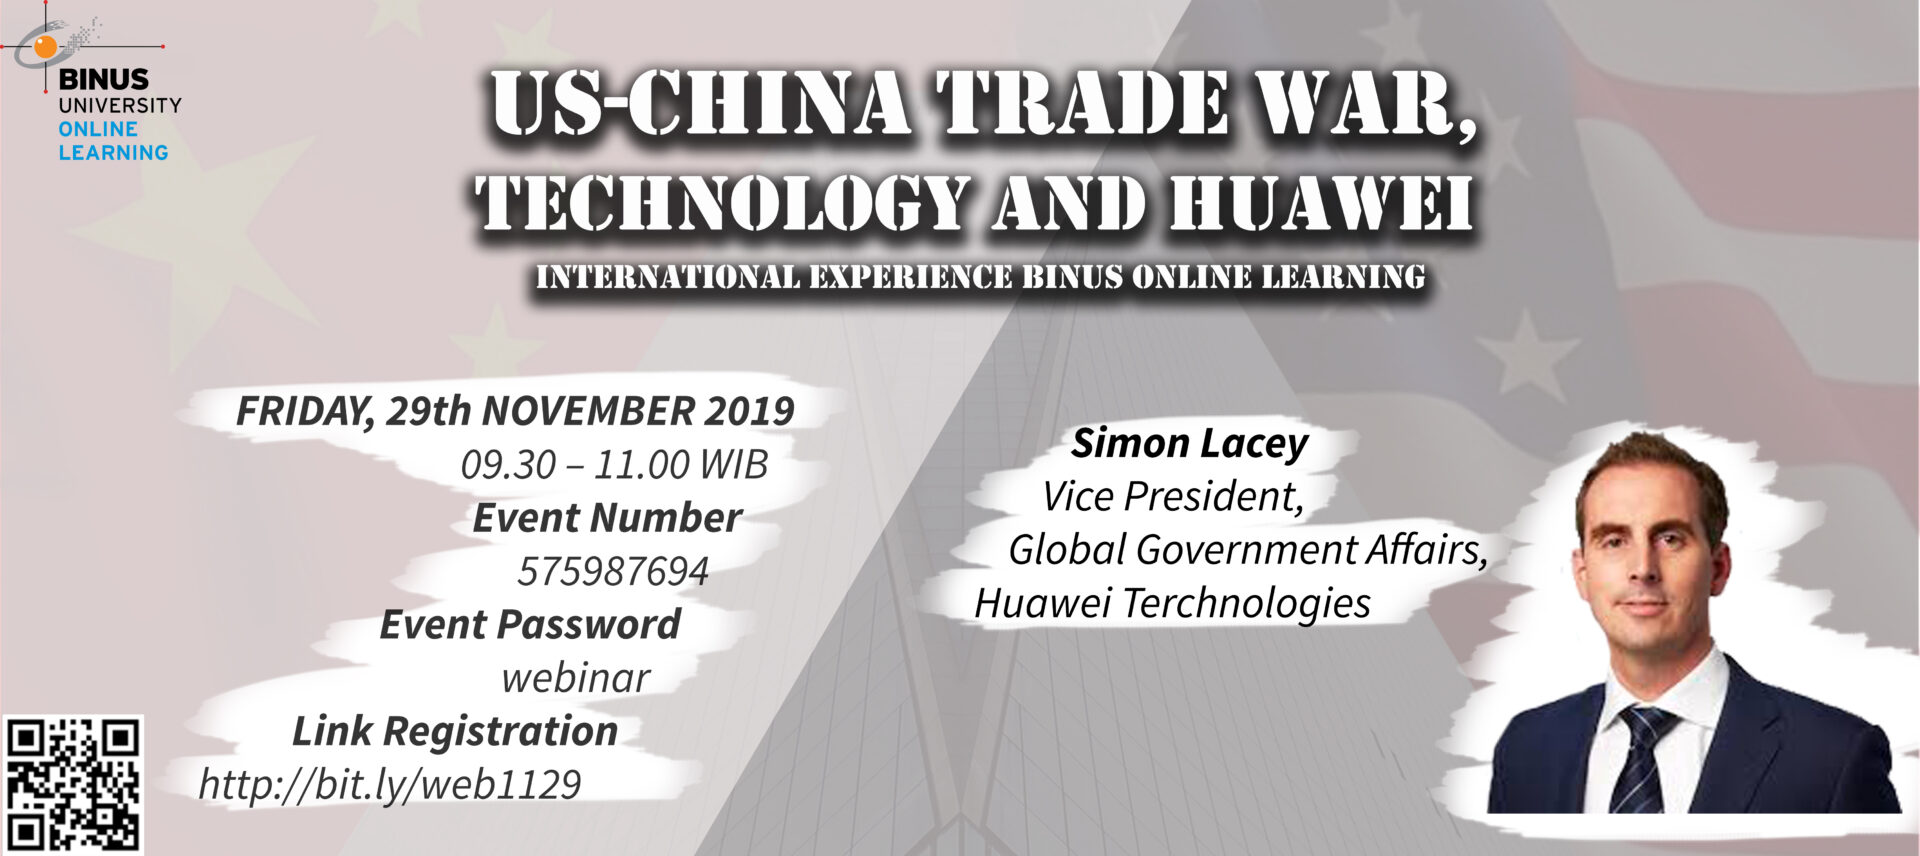 US-China Trade War, Technology and Huawei Gallery